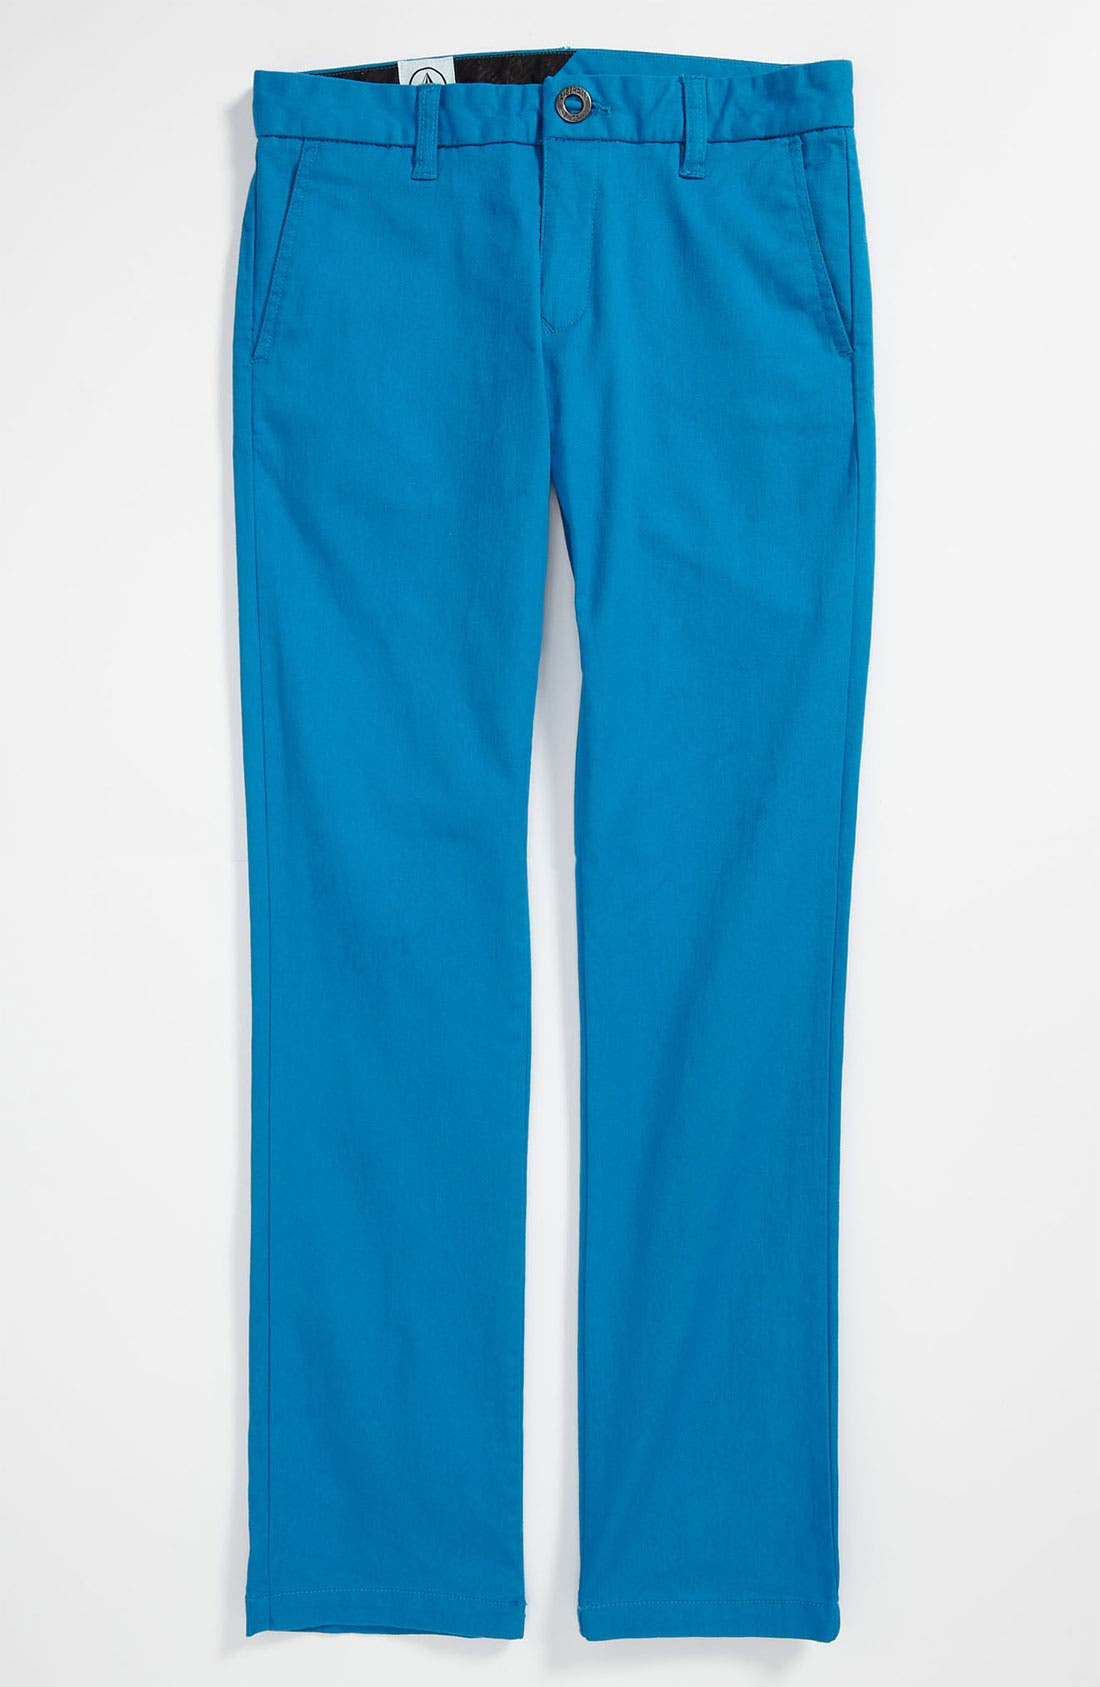 Alternate Image 1 Selected - Volcom '2 x 4' Chino Pants (Big Boys)